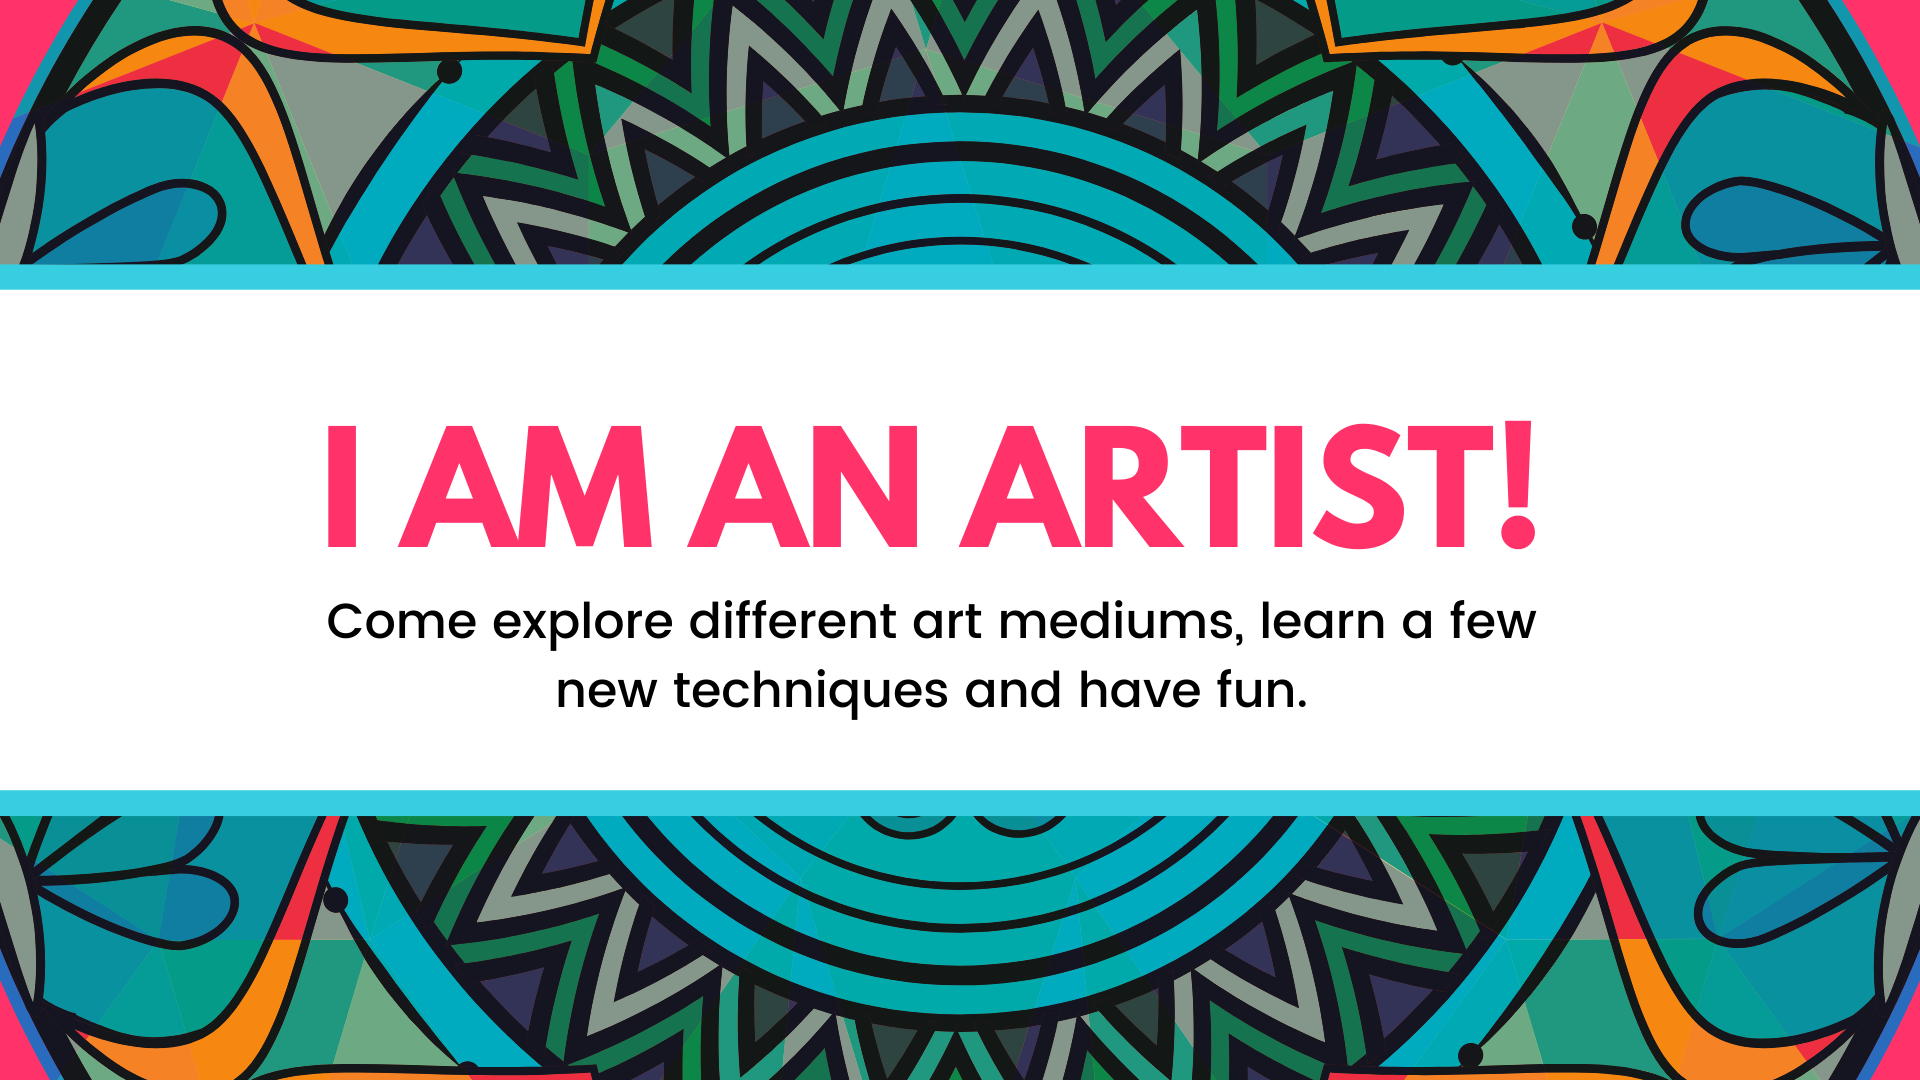 I am an artist workshop will be on February 1st